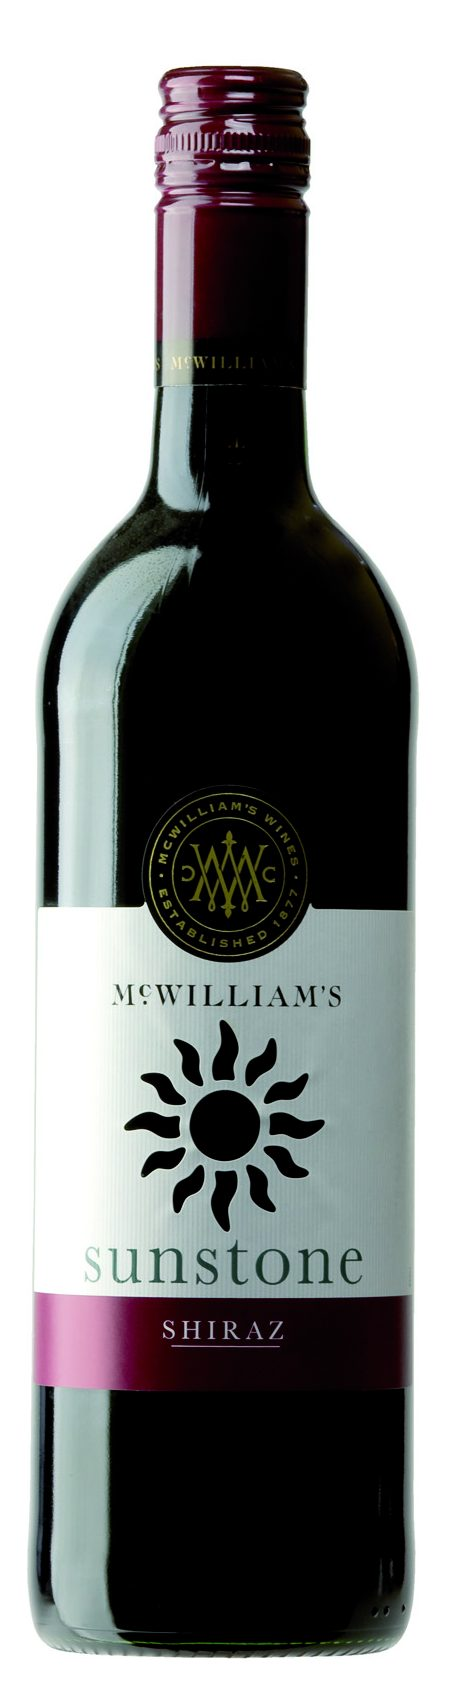 Mc Williams Sunstone Shiraz